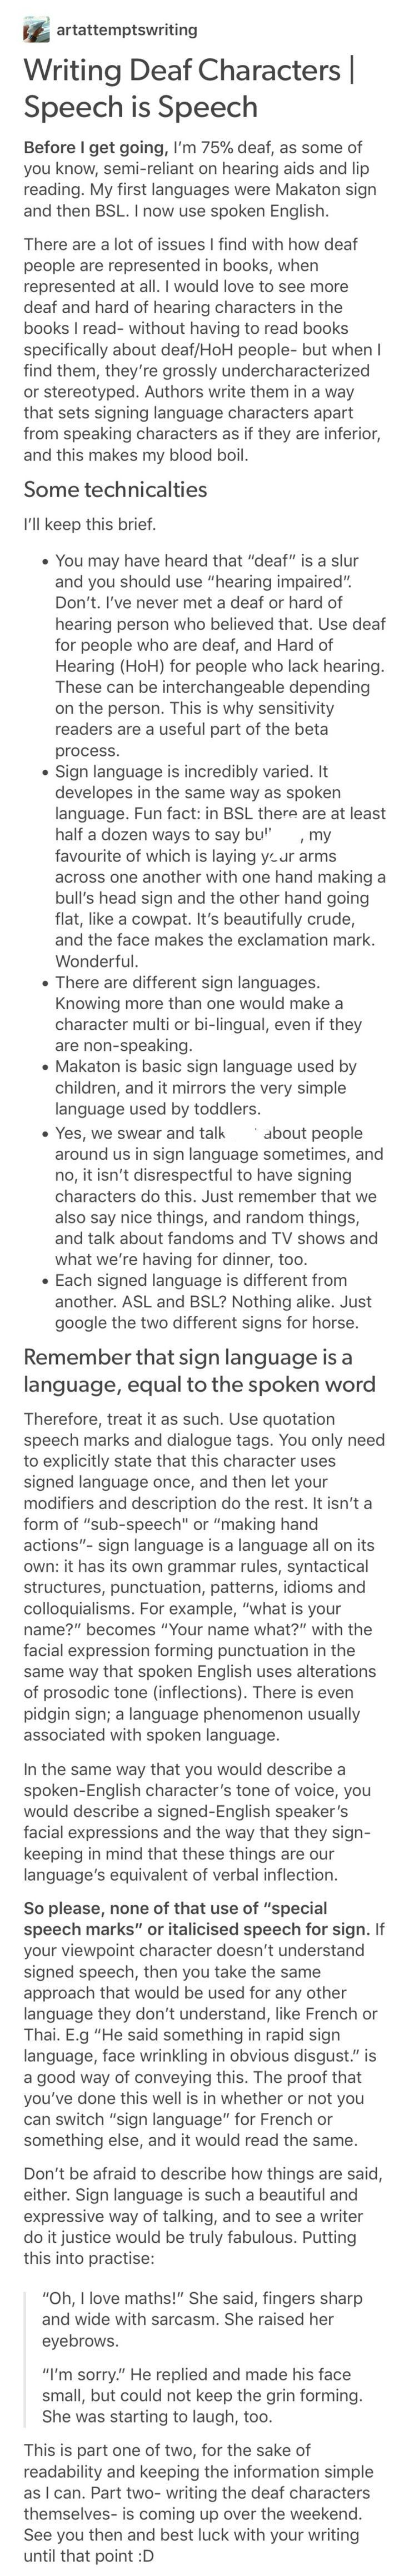 Writing deaf characters ; ohh, I have to use this!!❤